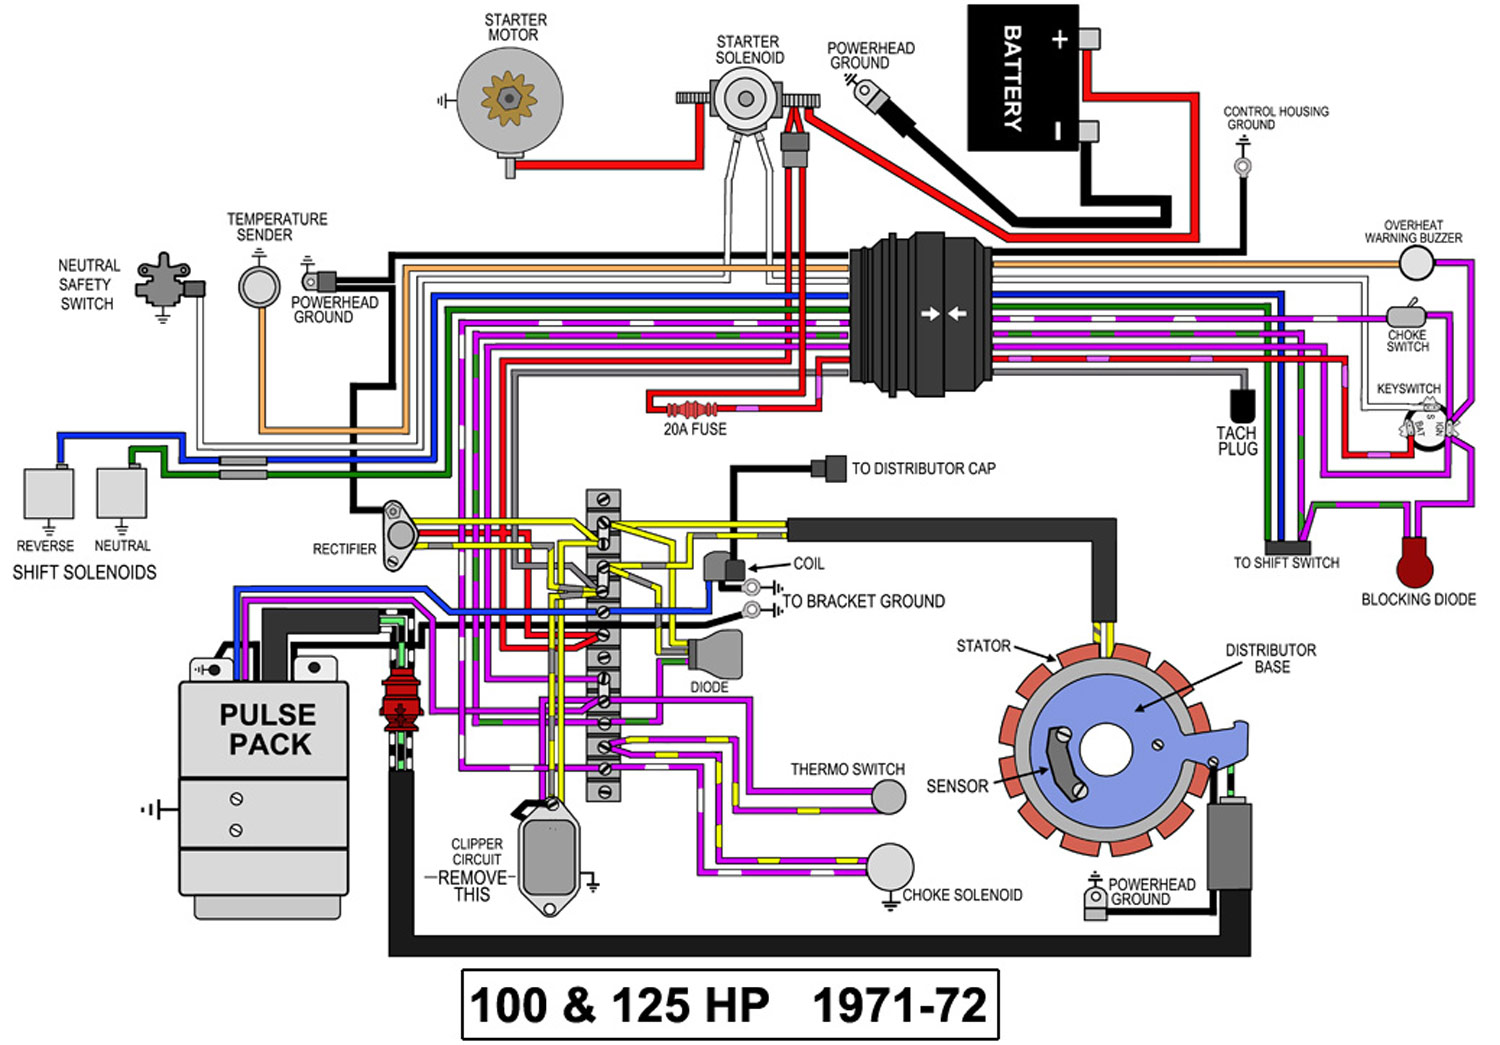 Honda 70 Wiring Diagram Blog Cl70 Evinrude Johnson Outboard Diagrams Mastertech Marine Simple